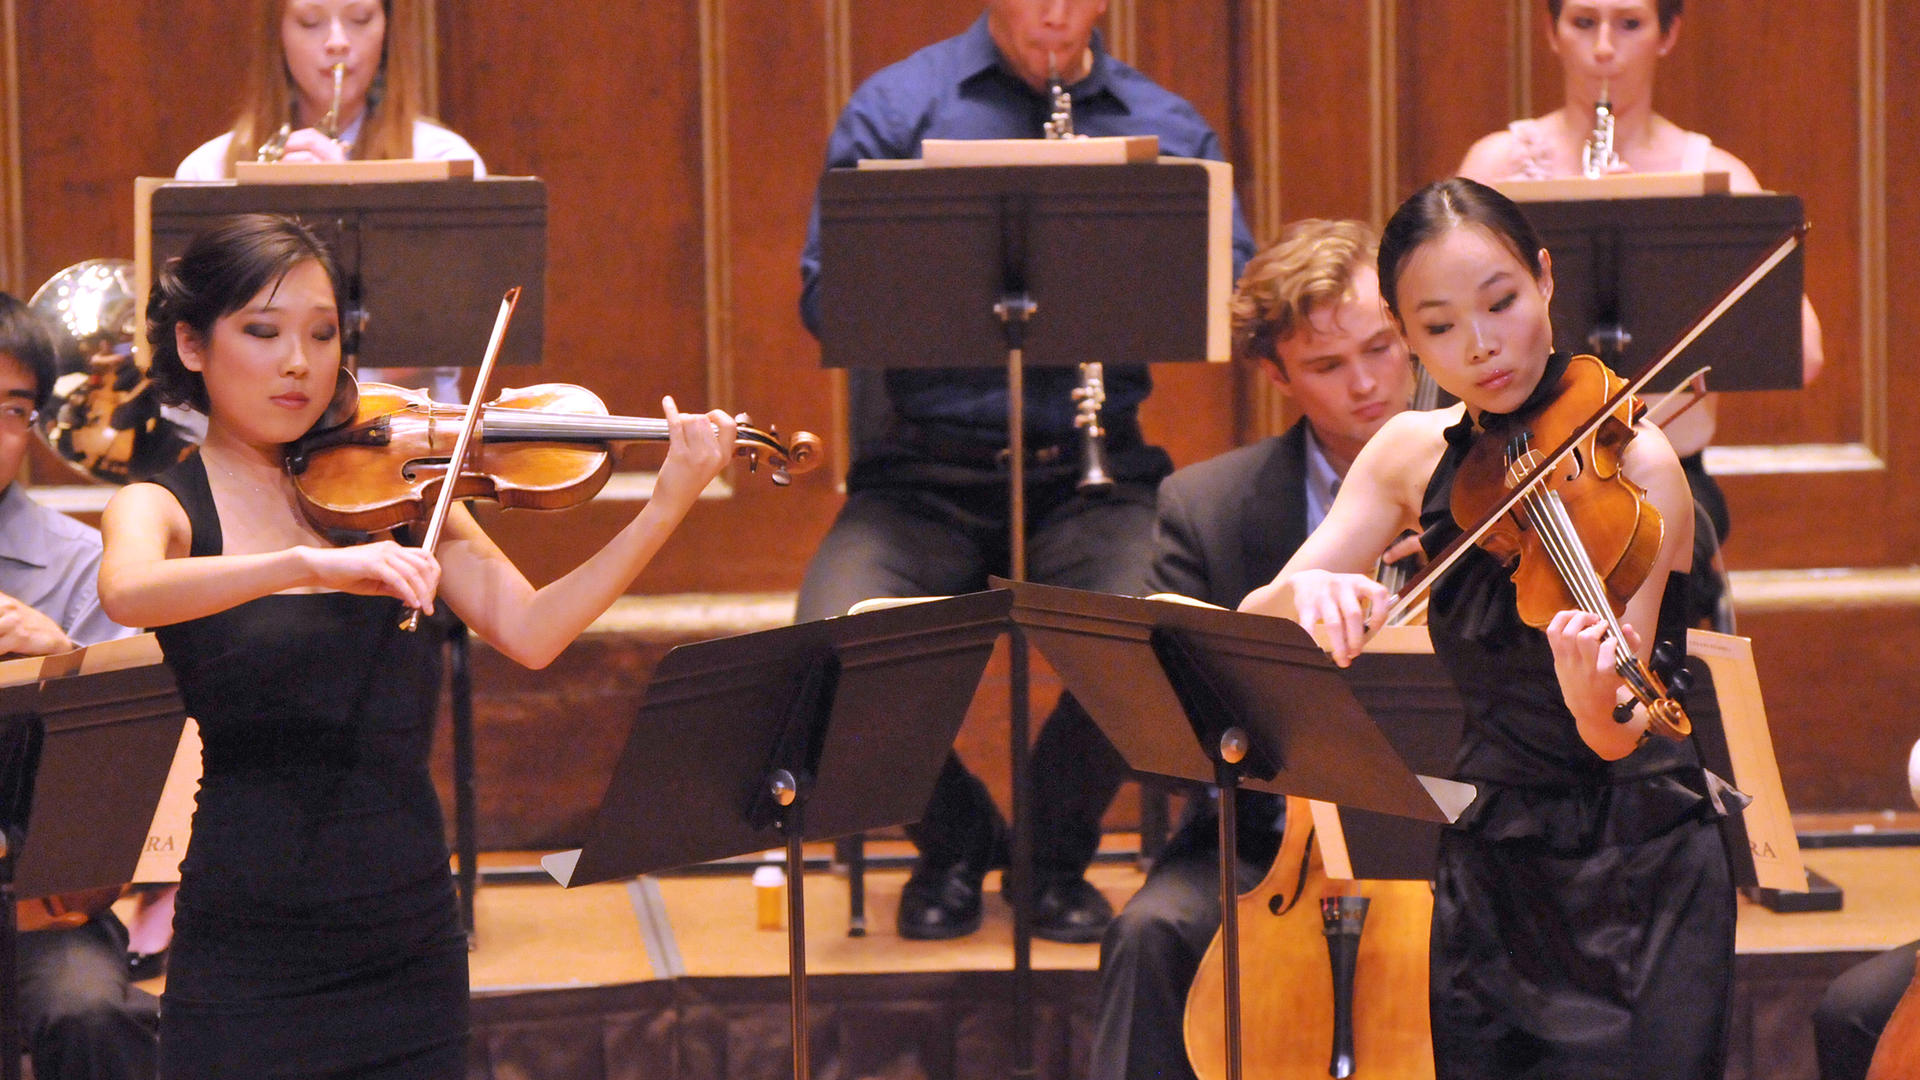 Grace Park and Wenting Kang perform Mozart's Sinfonia Concertante